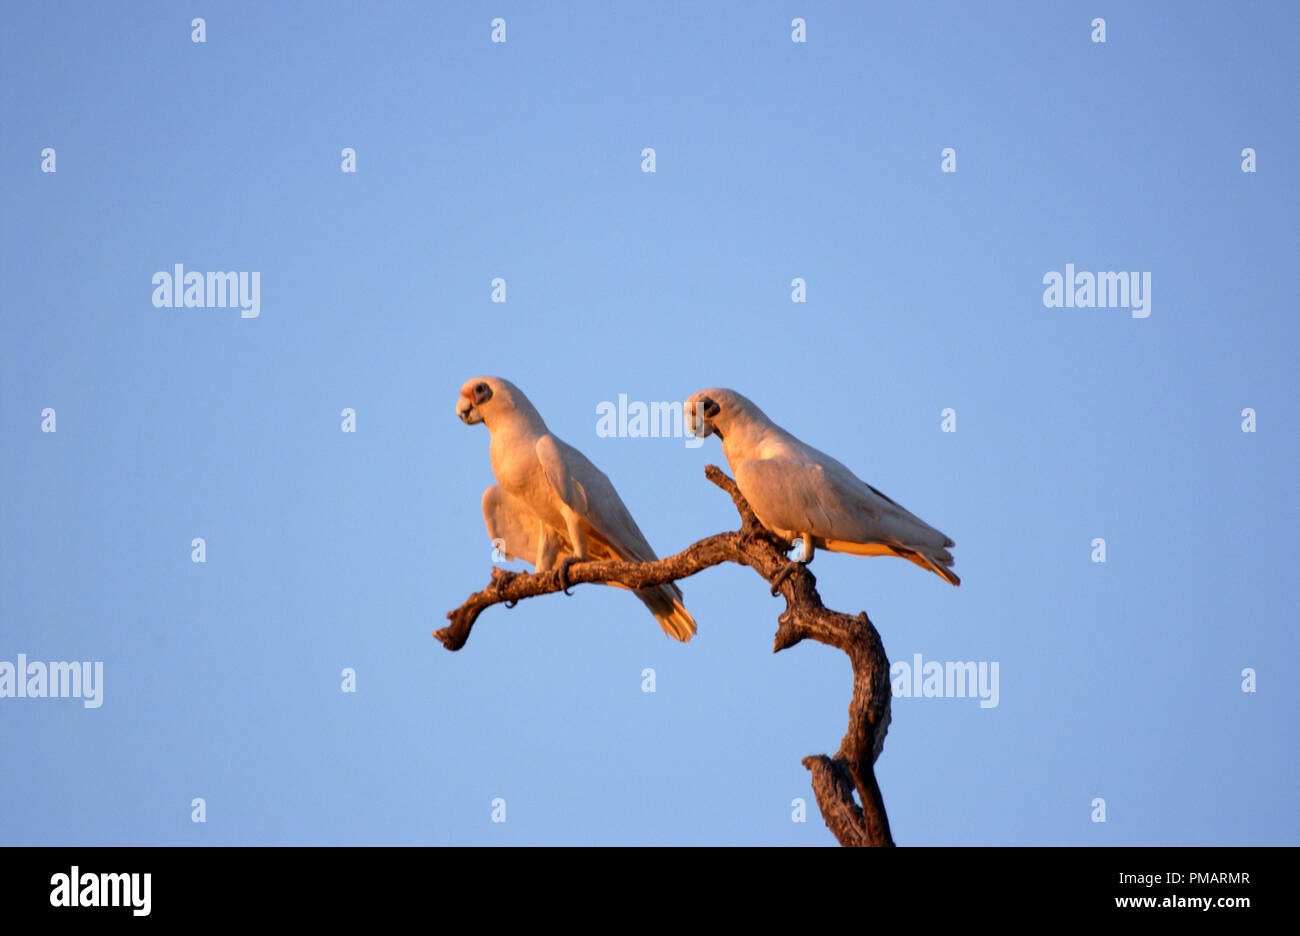 Little corellas (Cacatua sanguinea) perched on tree branch in the outback of Western Australia. - Stock Image